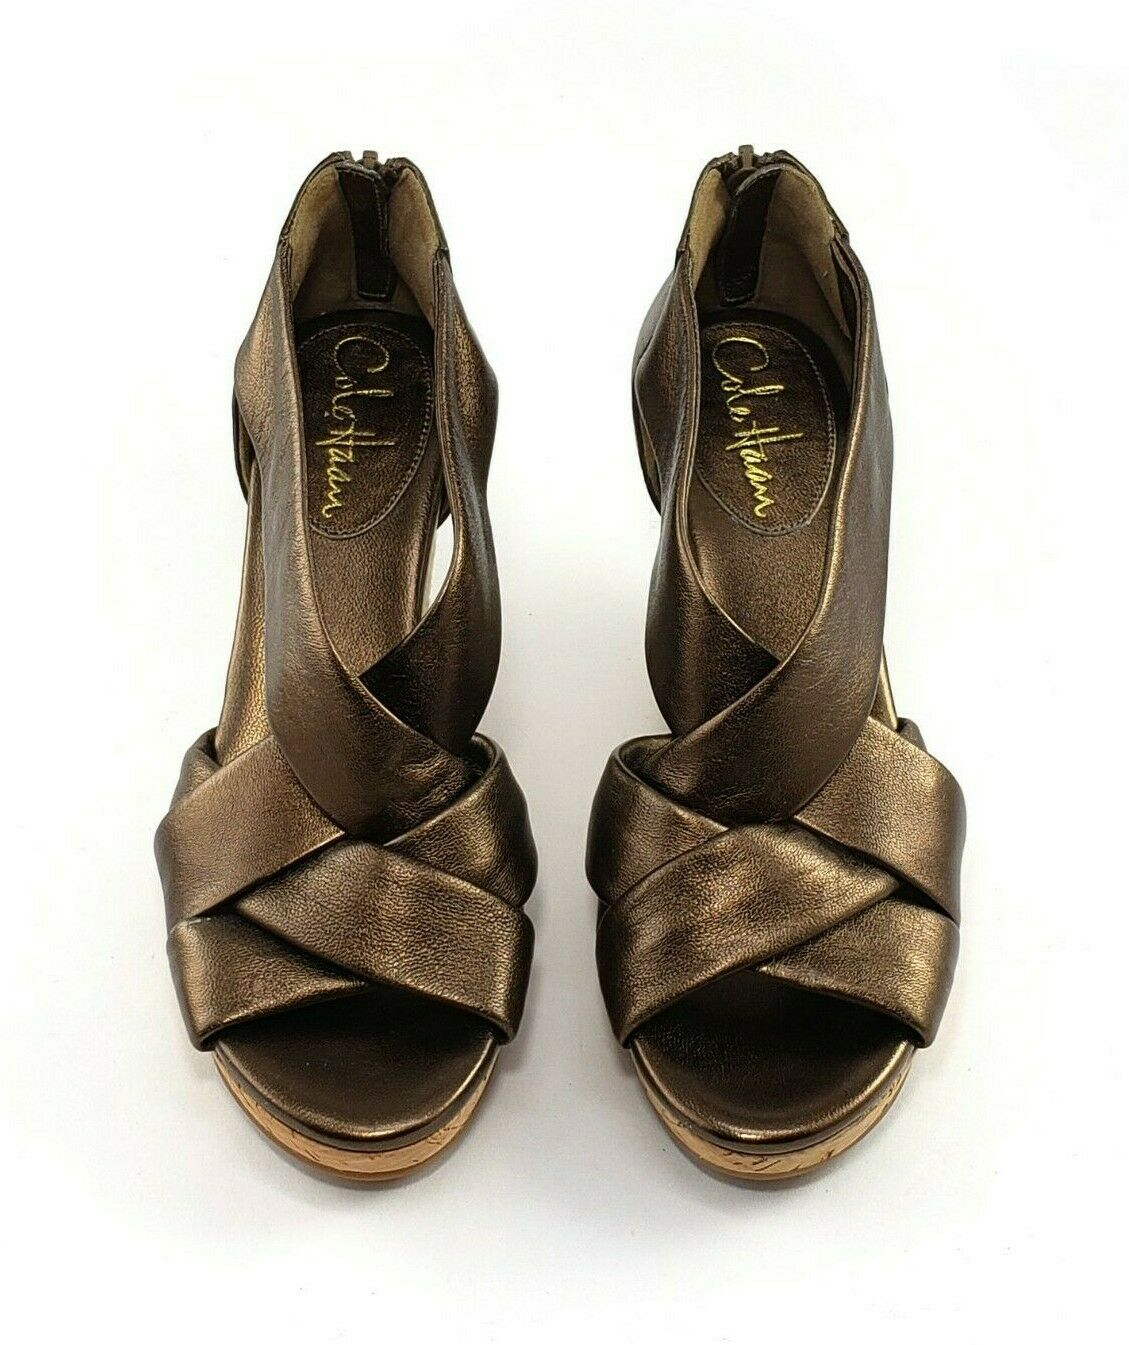 Cole Haan Delphina II Wedge Sandals Bronze Leather Leather Leather Zip Back Dimensione 6 M NEW 1f5f54